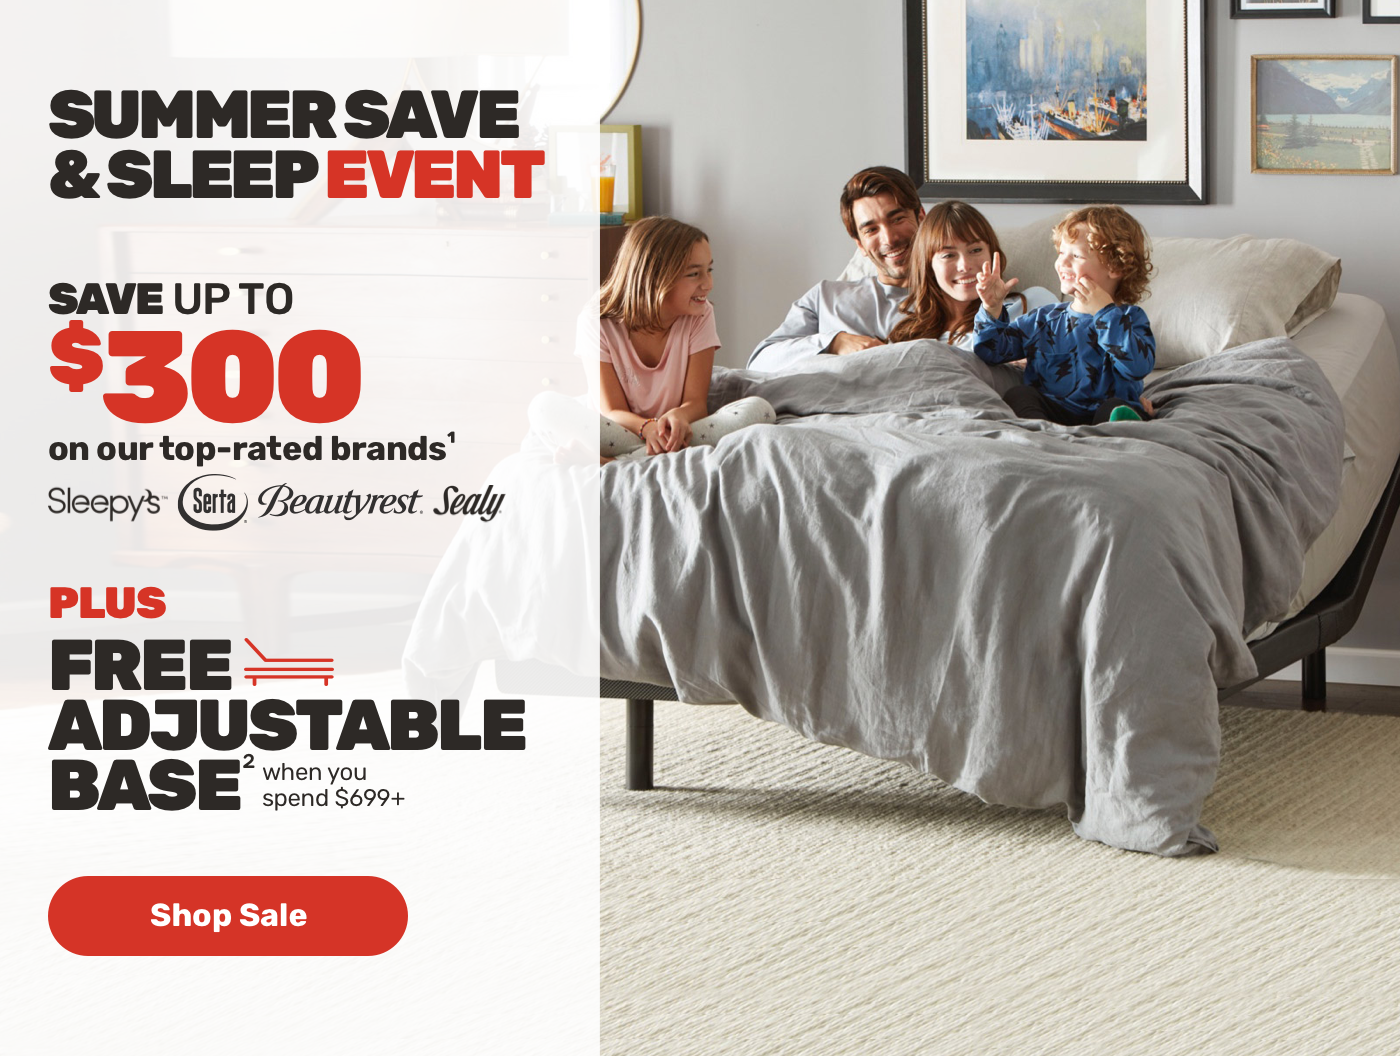 SUMMER SAVE & SLEEP EVENT Save upto $300 on our top rated brands + free adjustable base